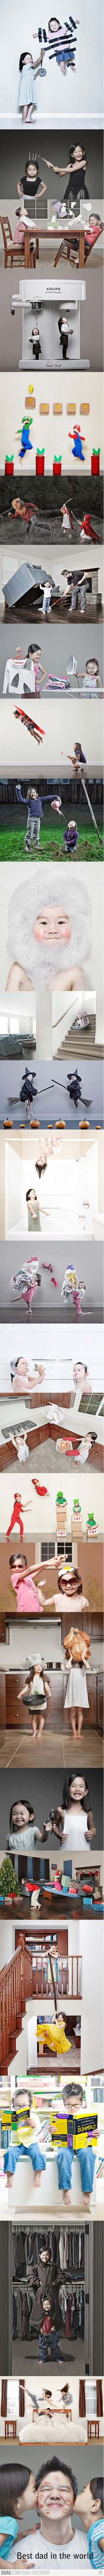 Awesome family pics - to cute